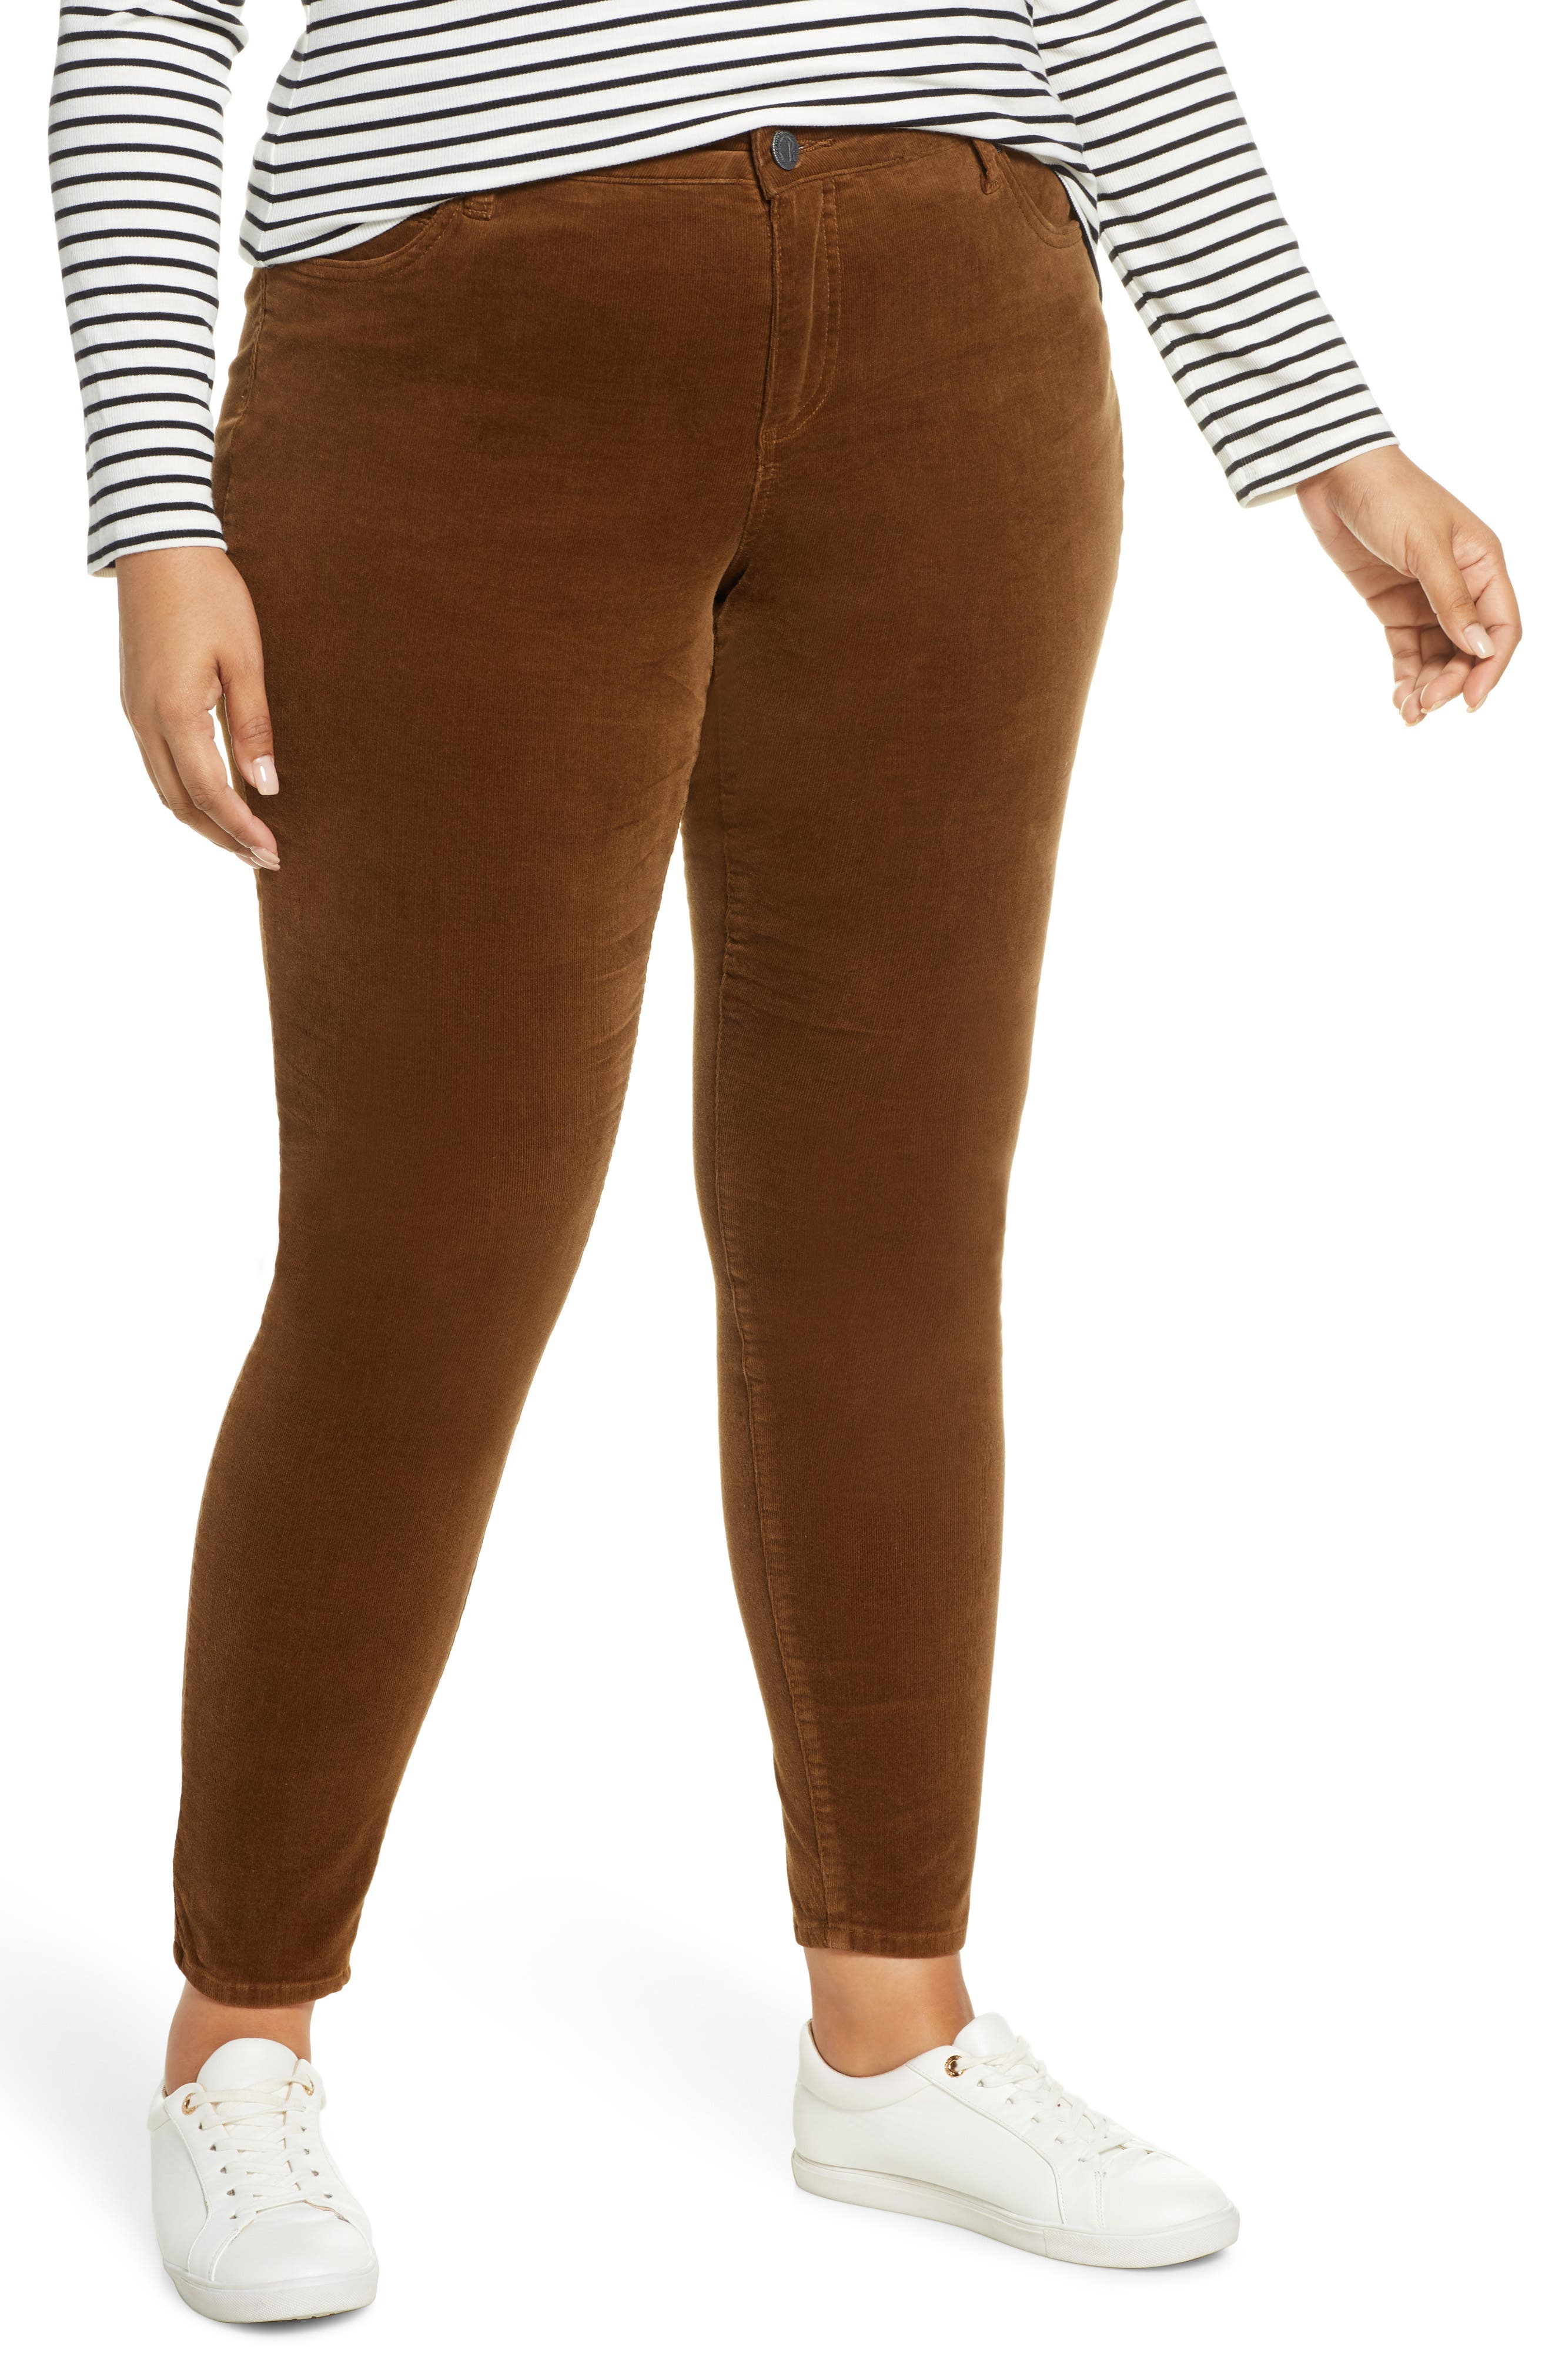 Season-ready cords are designed with a flattering high waist and slimming straight legs. Style Name: Kut From The Kloth Diana Cord Skinny Jeans (Plus Size). Style Number: 5881999. Available in stores.